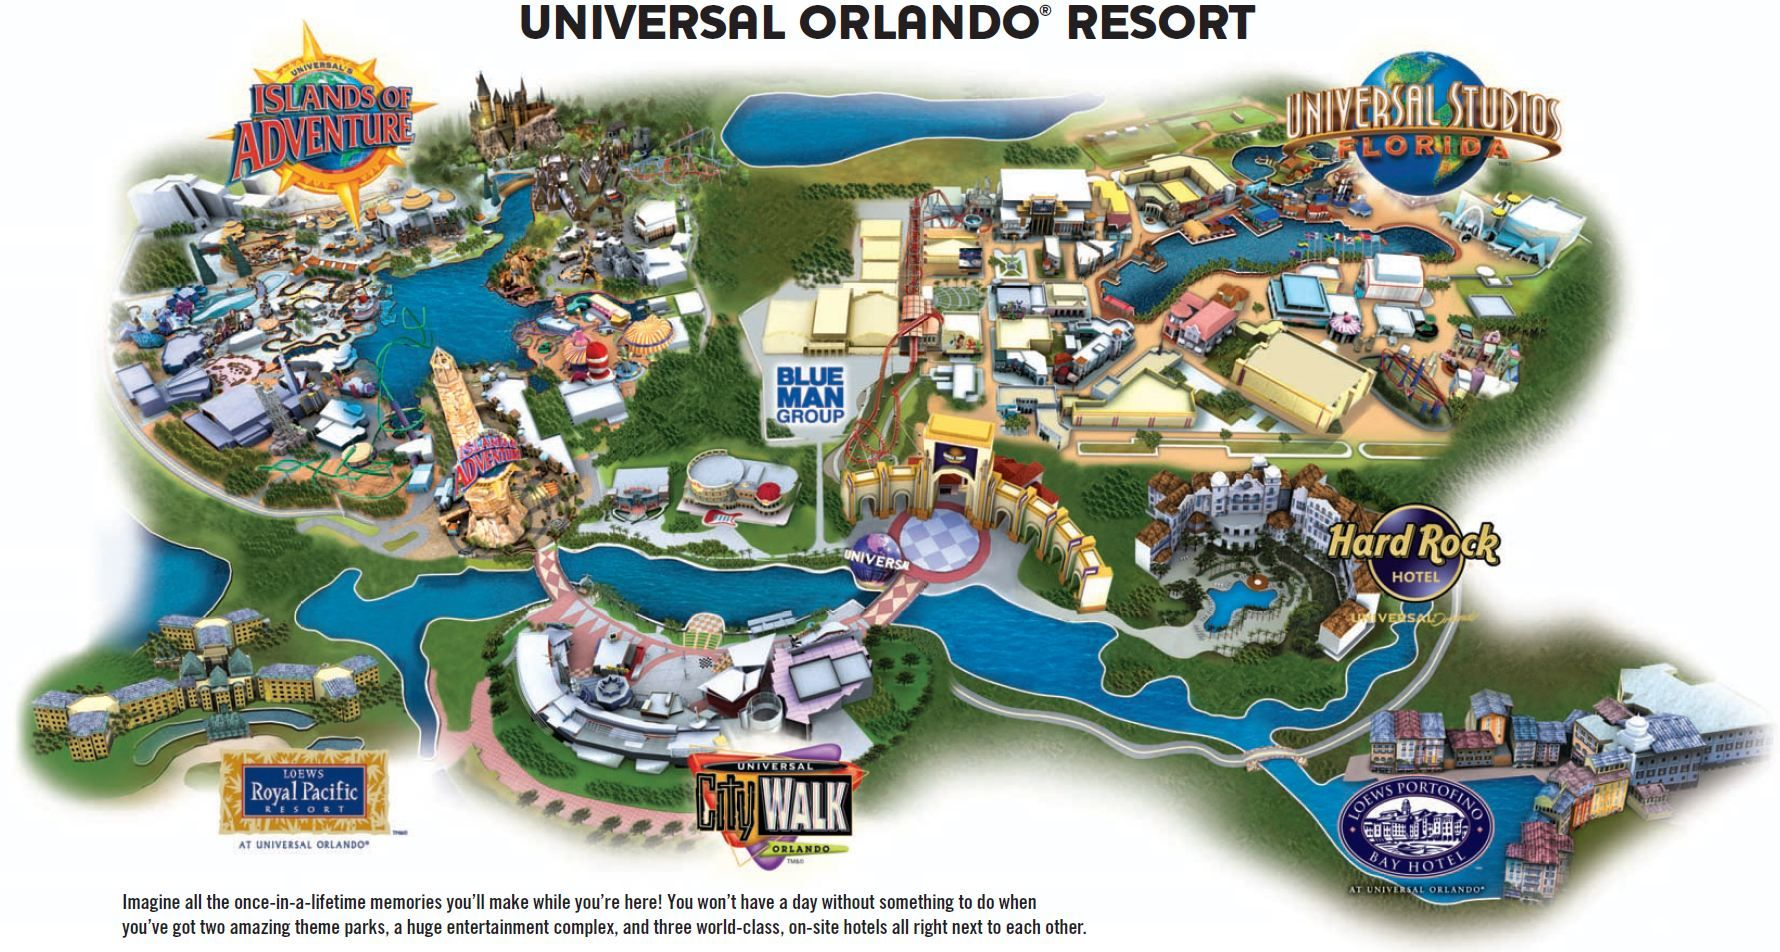 The First Park Universal Studios Opened In June 1990 And Had A Great Concept Of Visitors